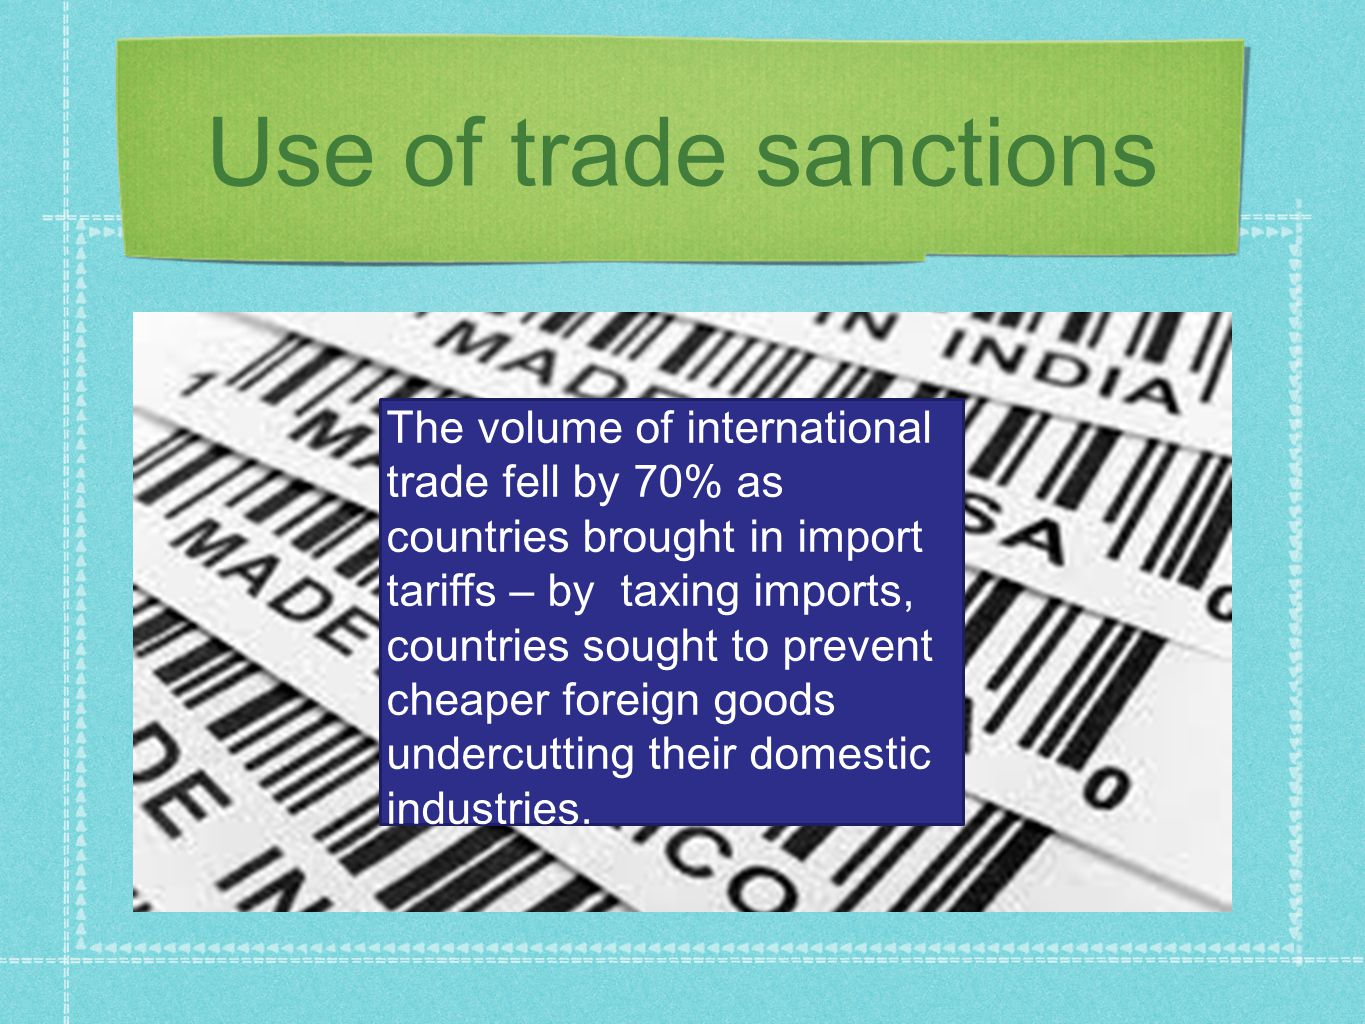 Use of trade sanctions